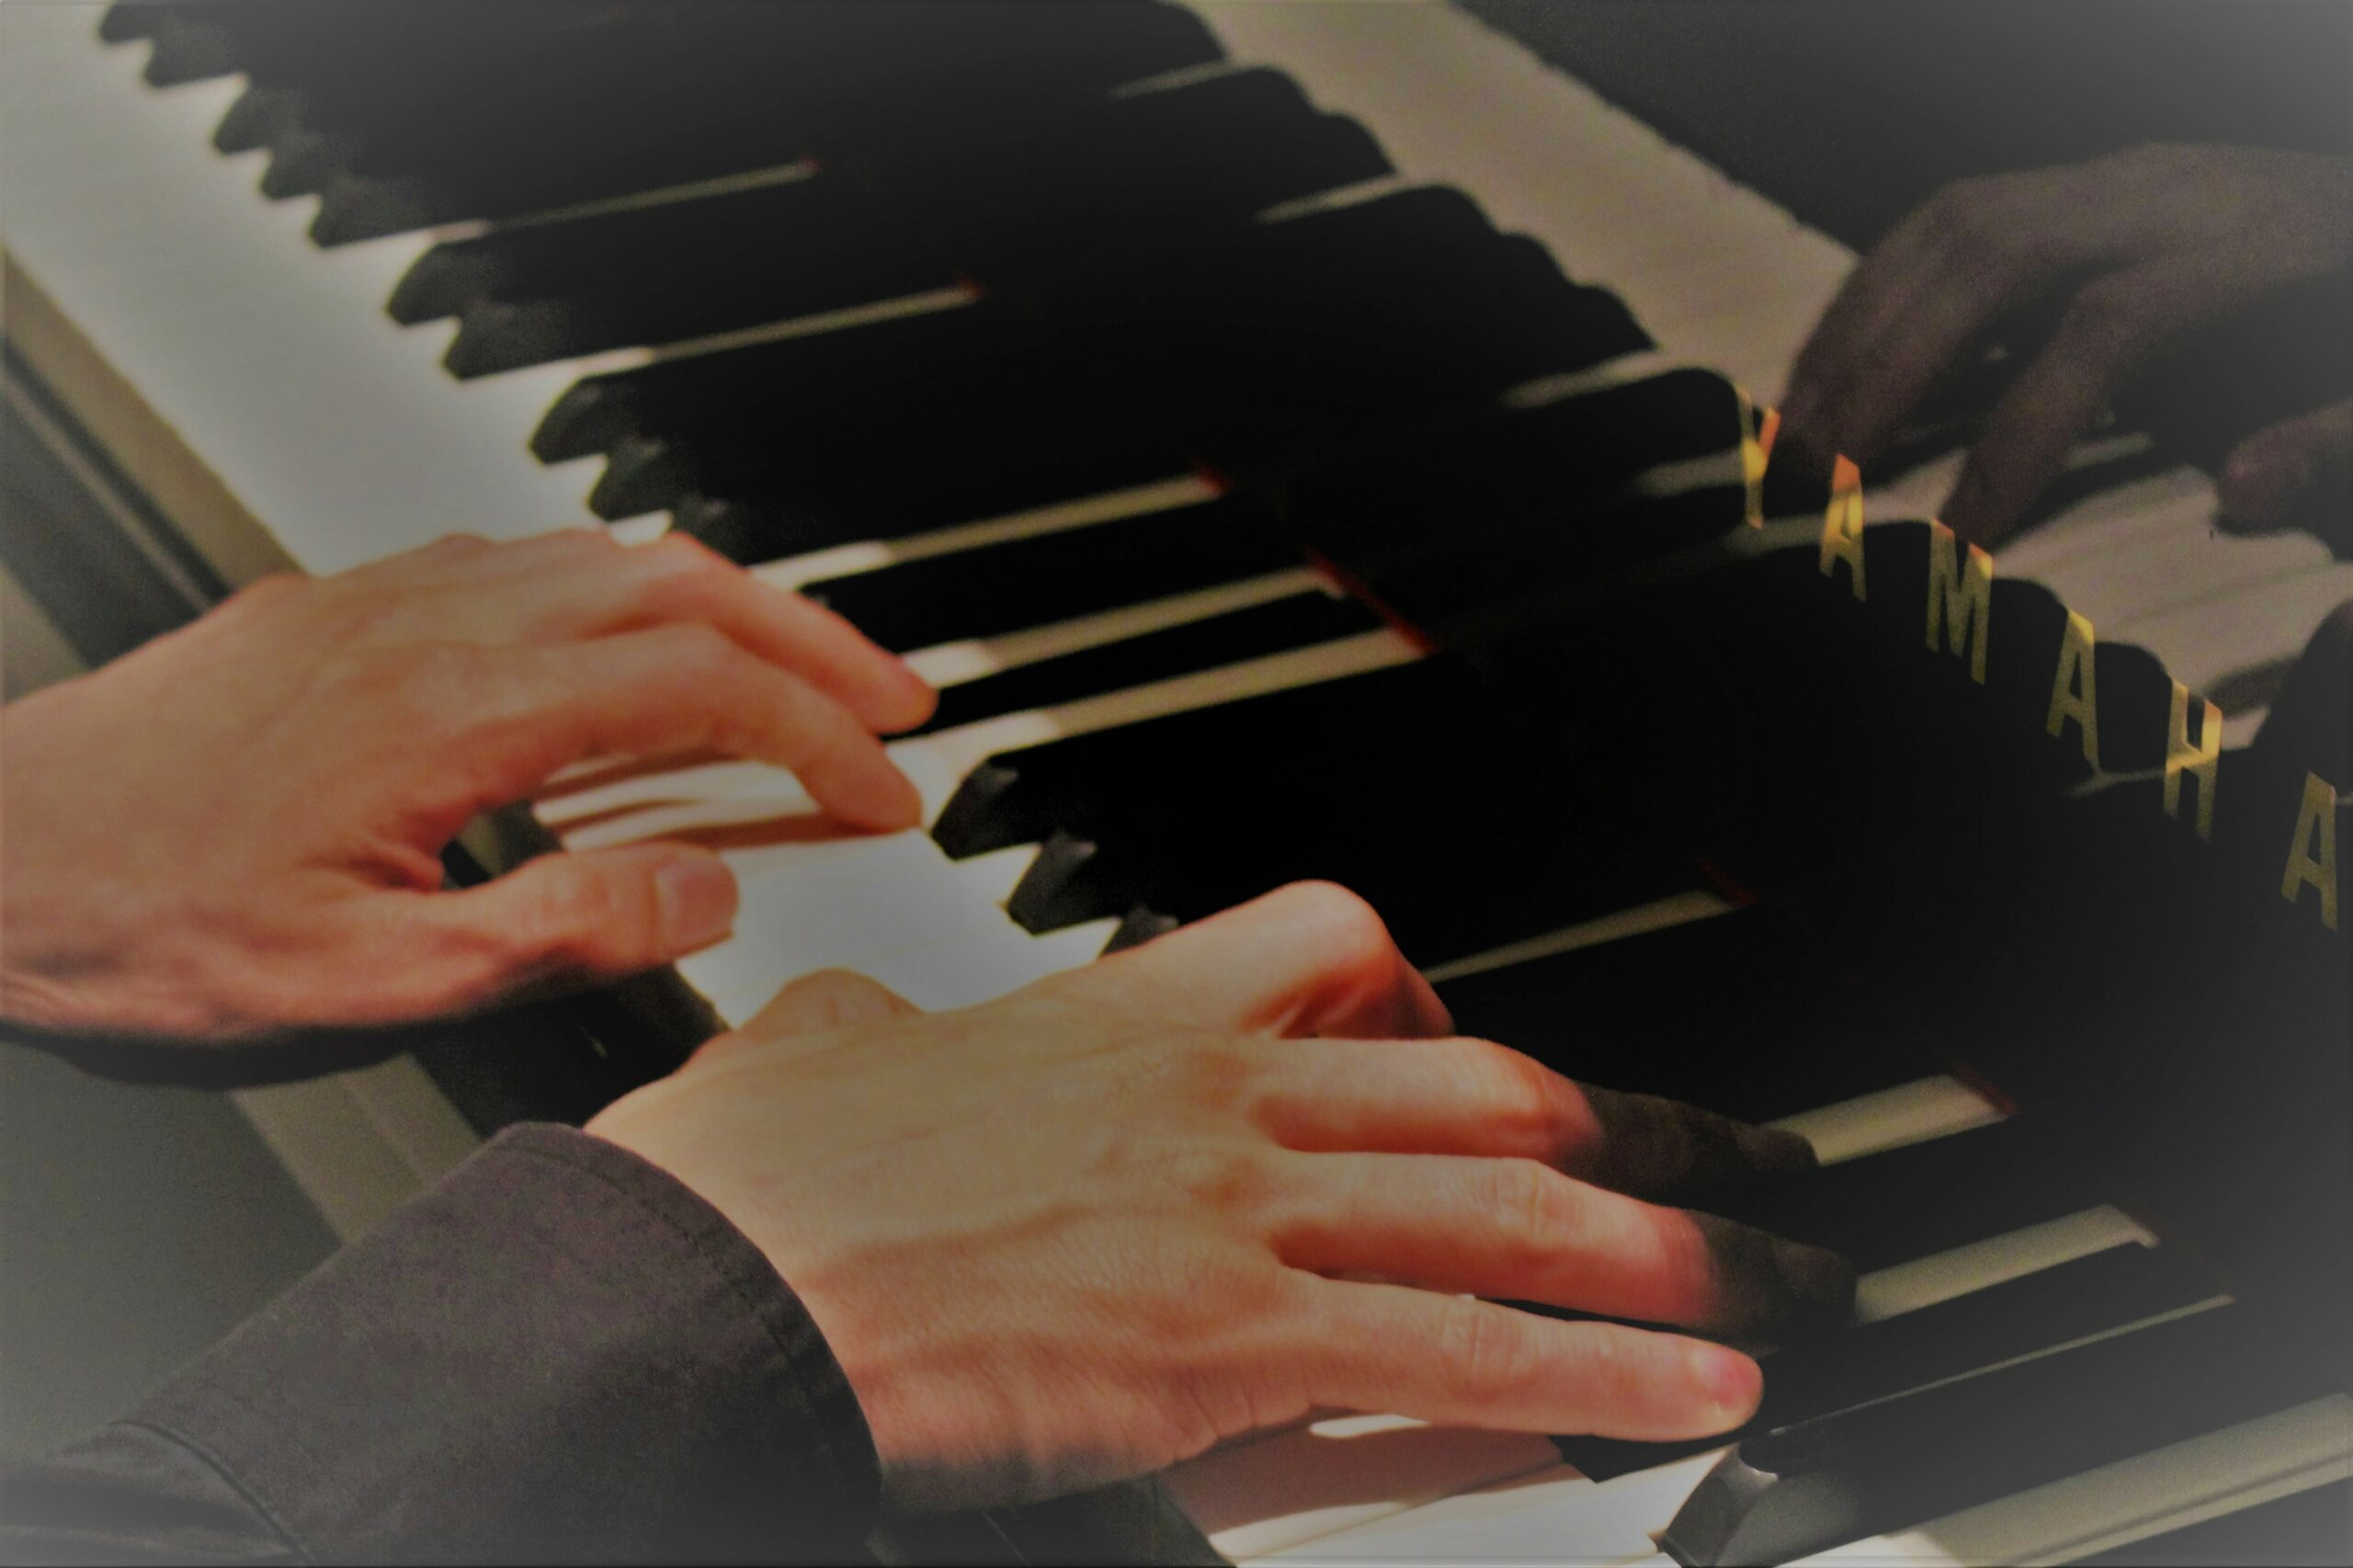 A helpful movement for piano players